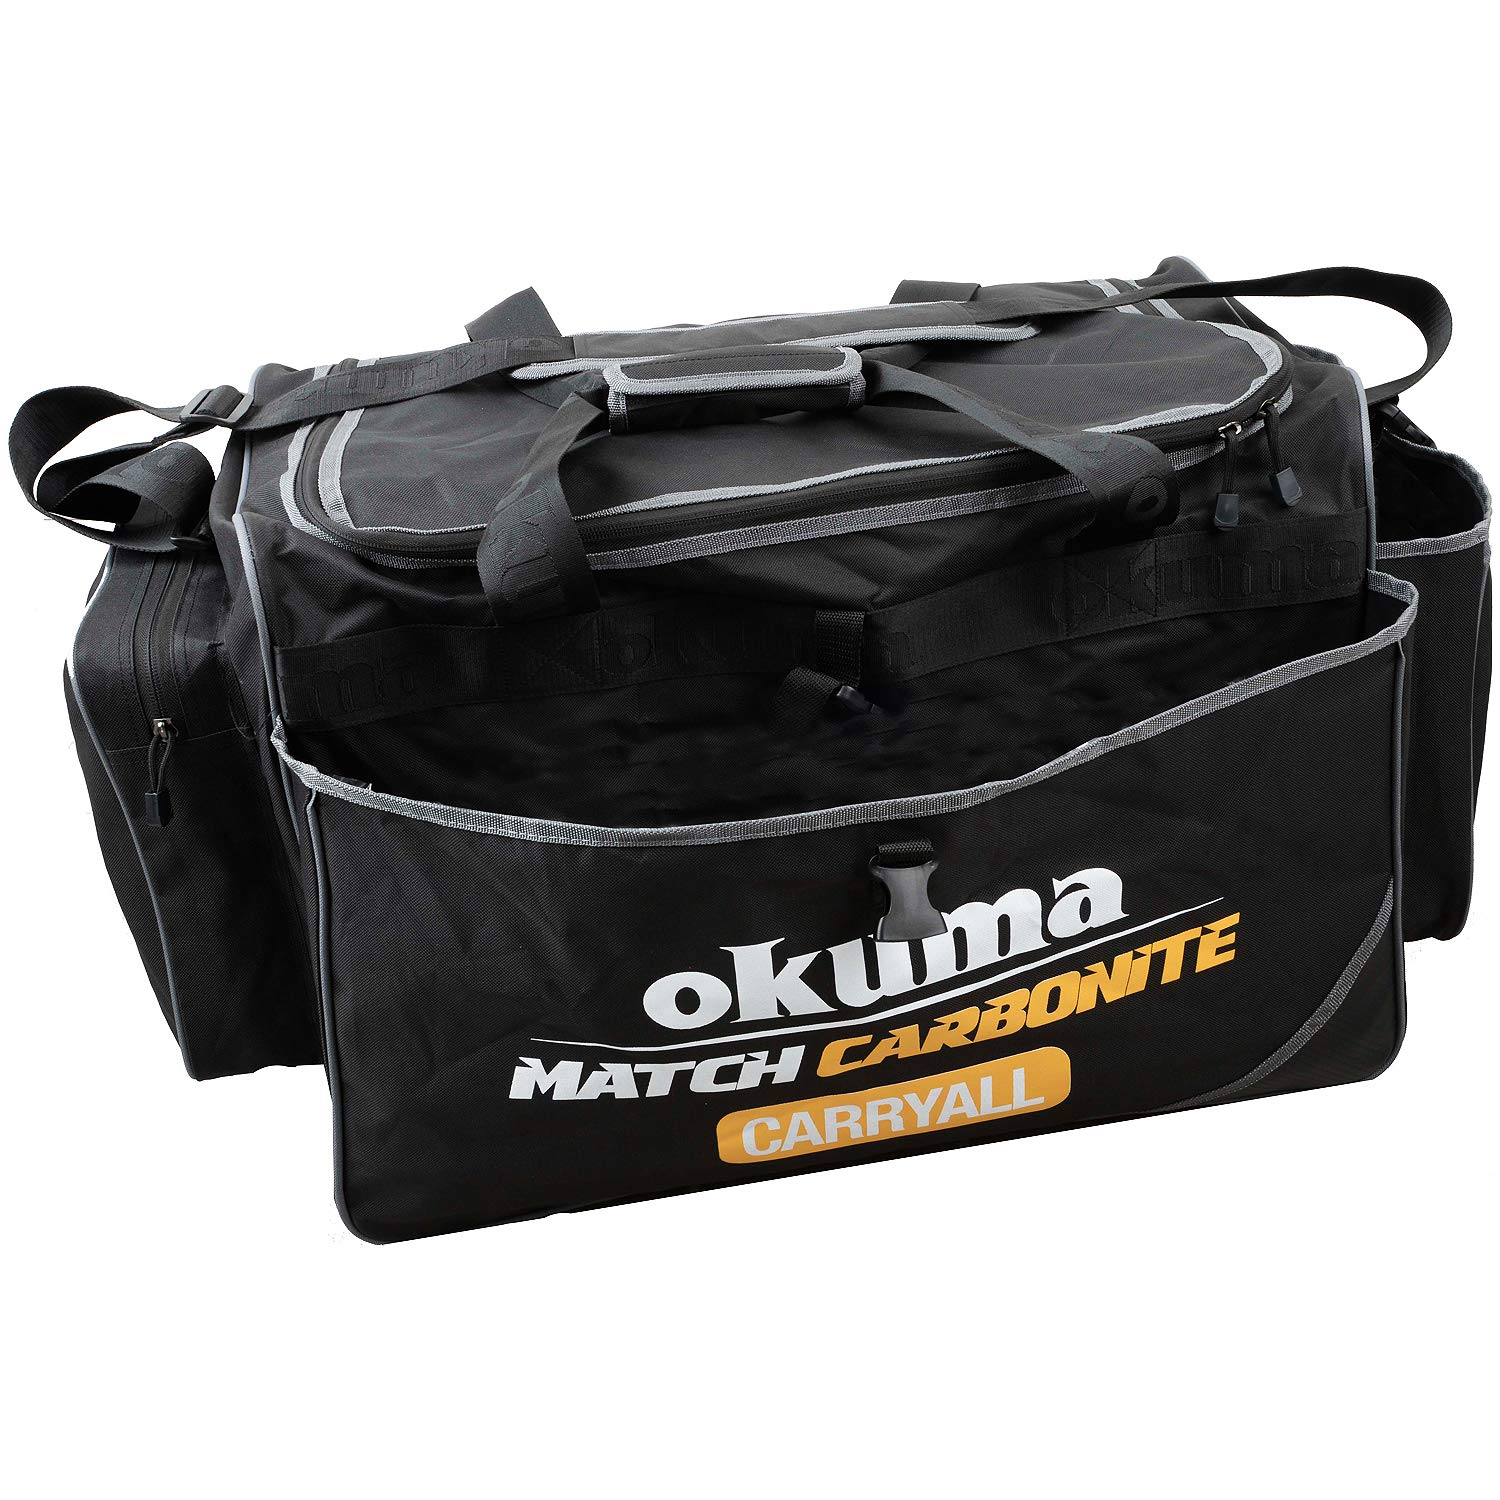 Okuma Match Carbonite Carryall (60x36x39cm)